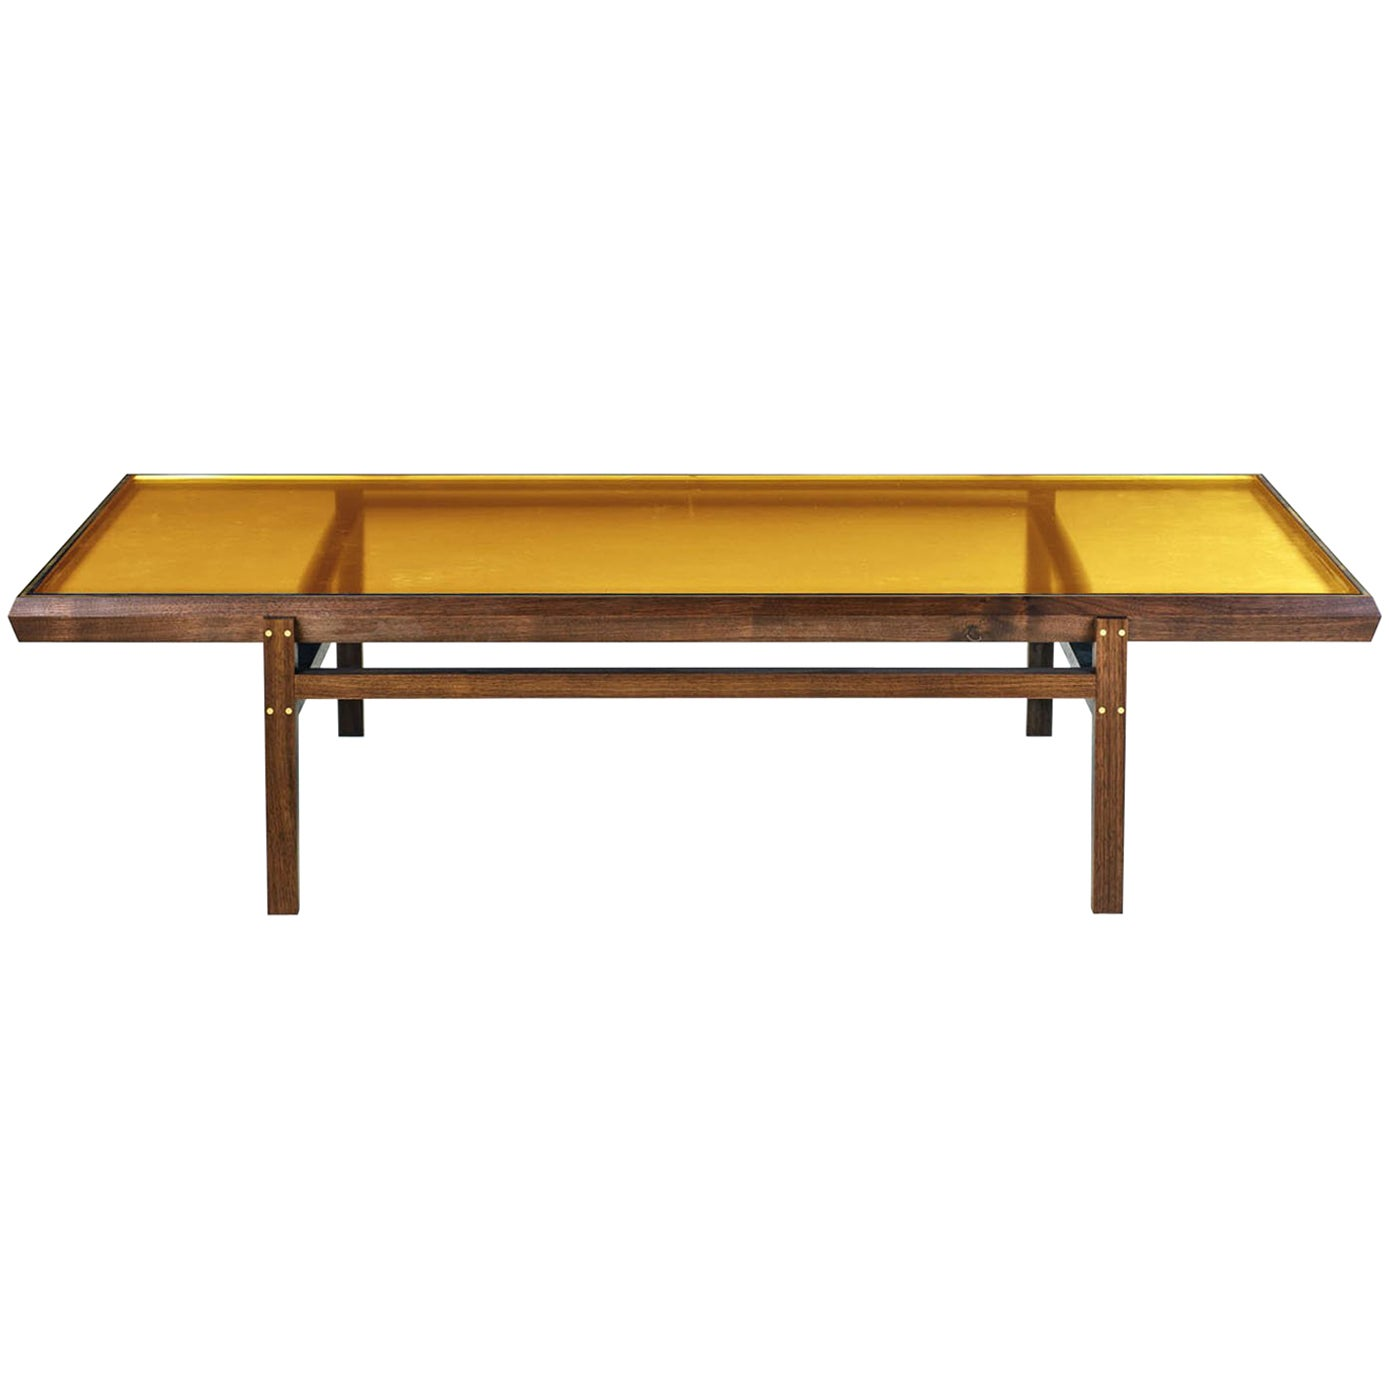 Pintor Coffee Table, Walnut Frame with Brass Inlay, Yellow Glass Top